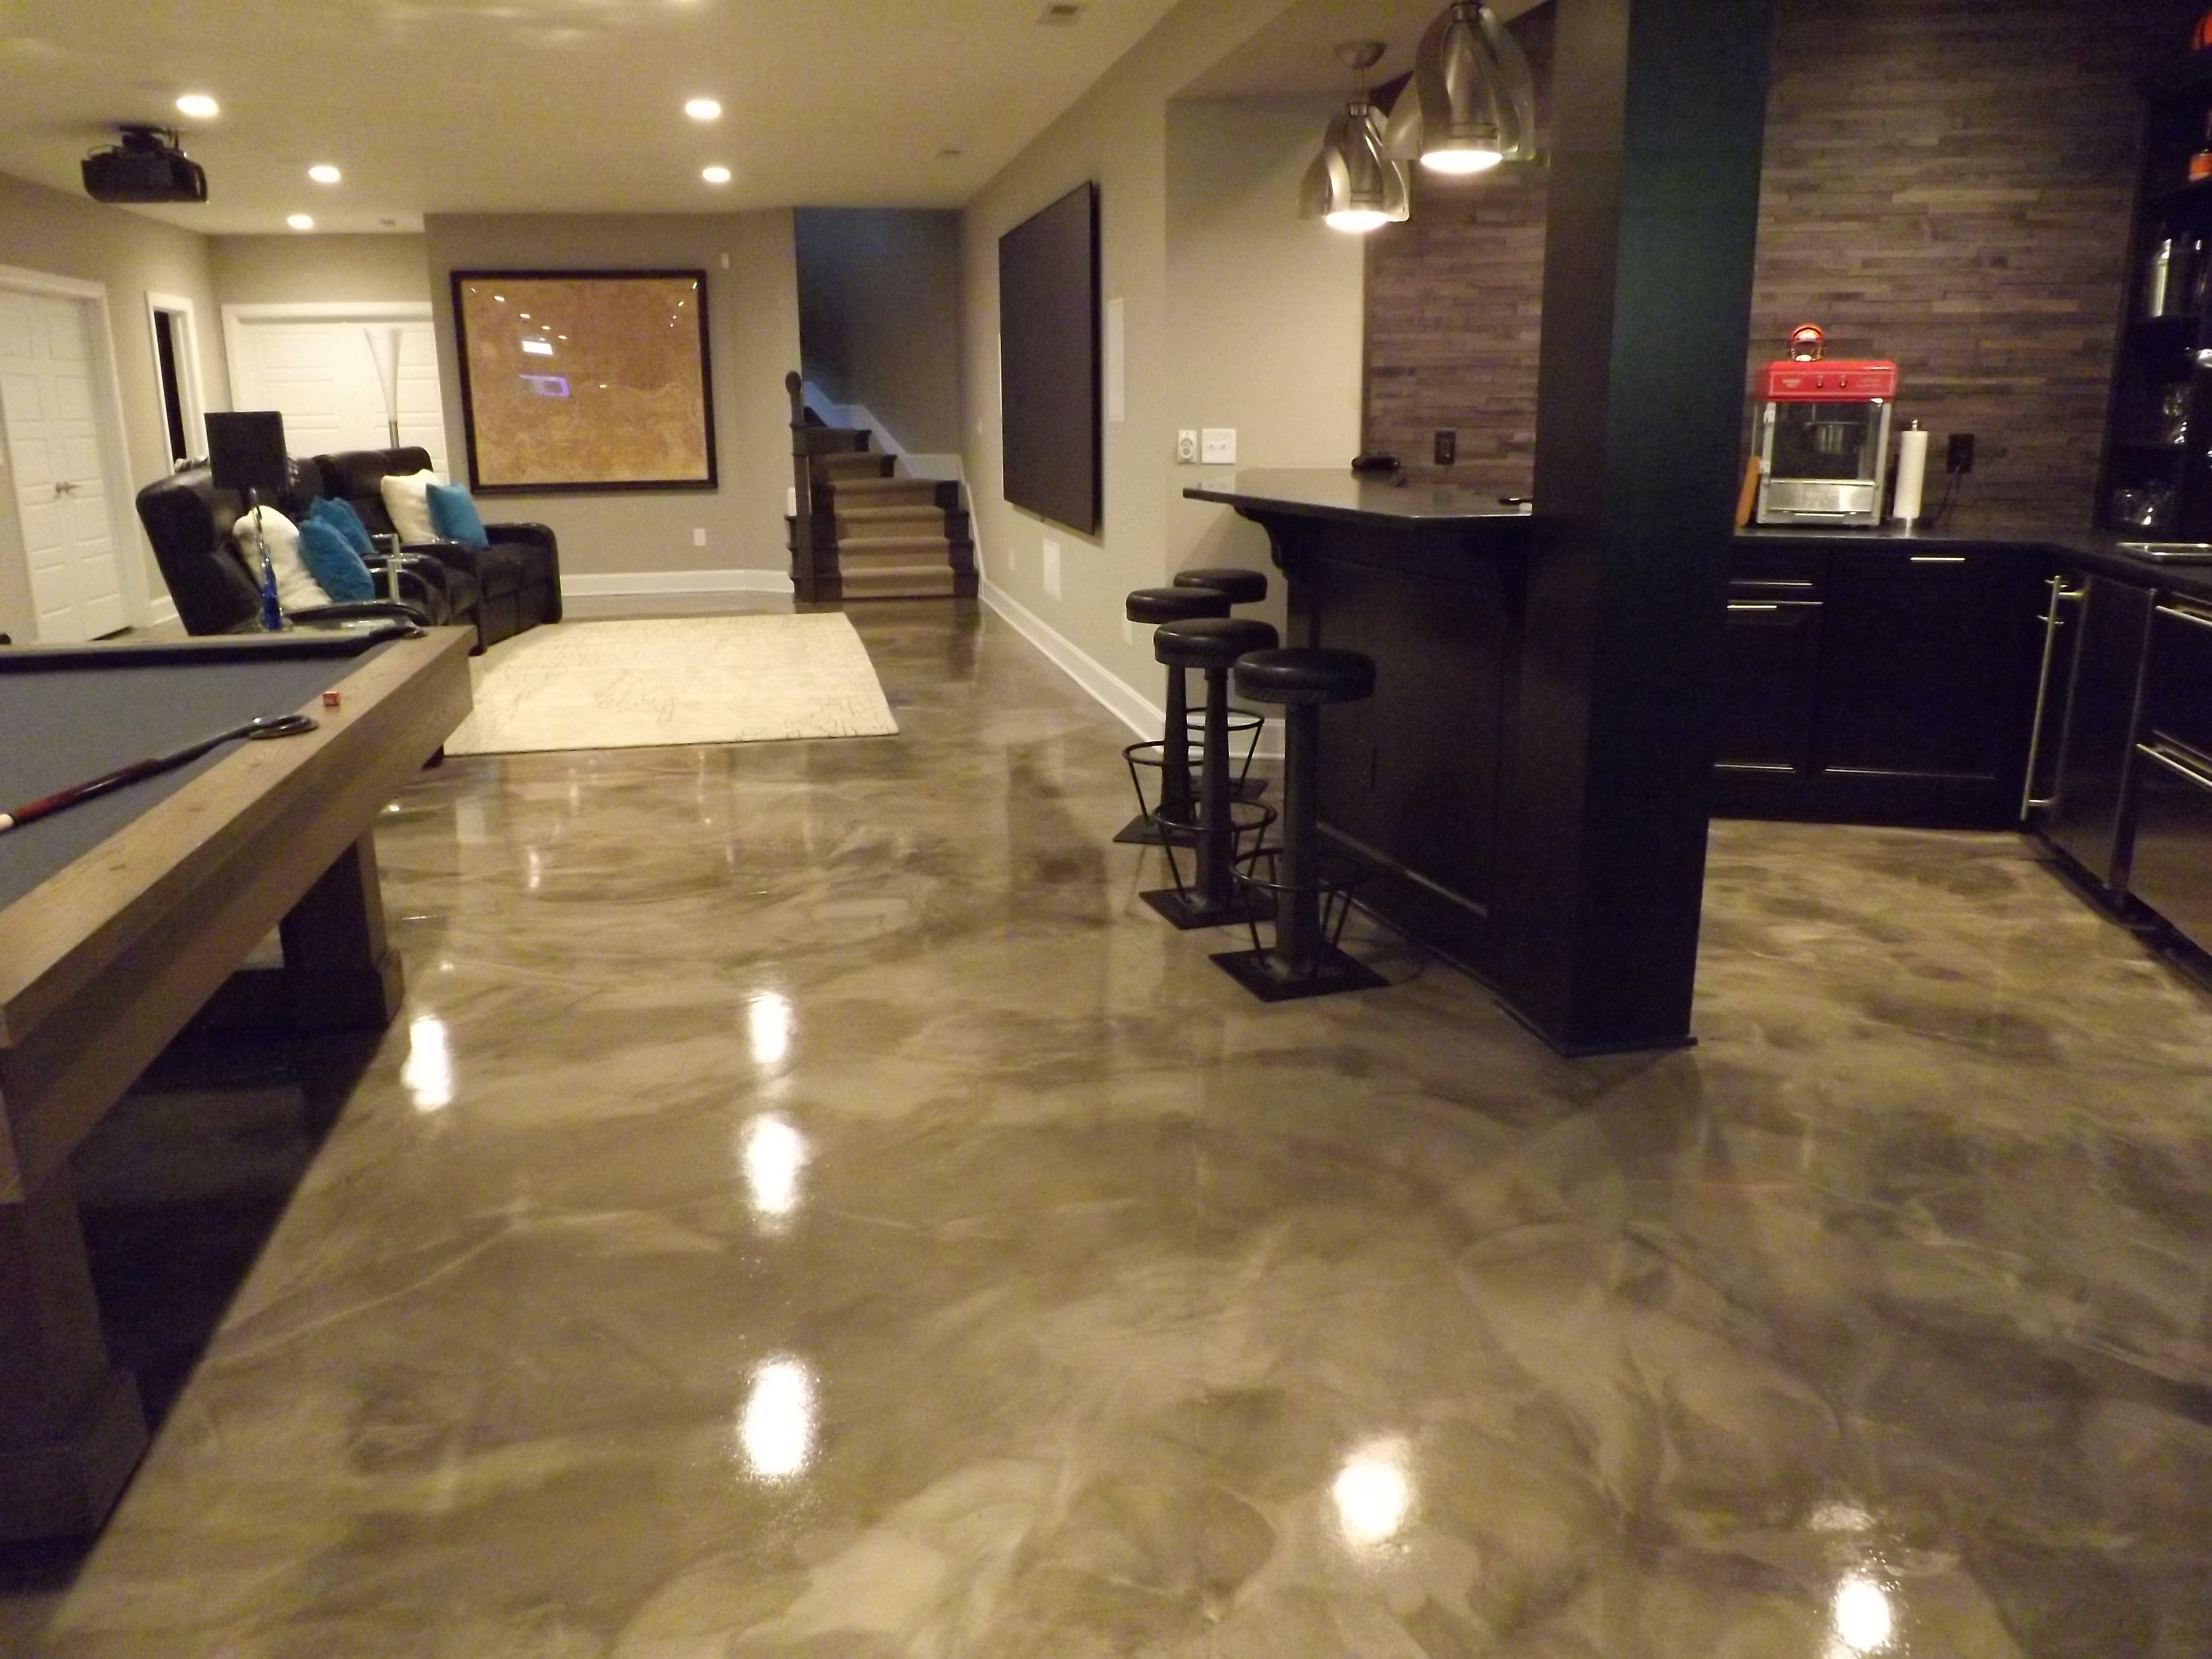 Residential Stained Concrete Floors: Residential Epoxy Flooring